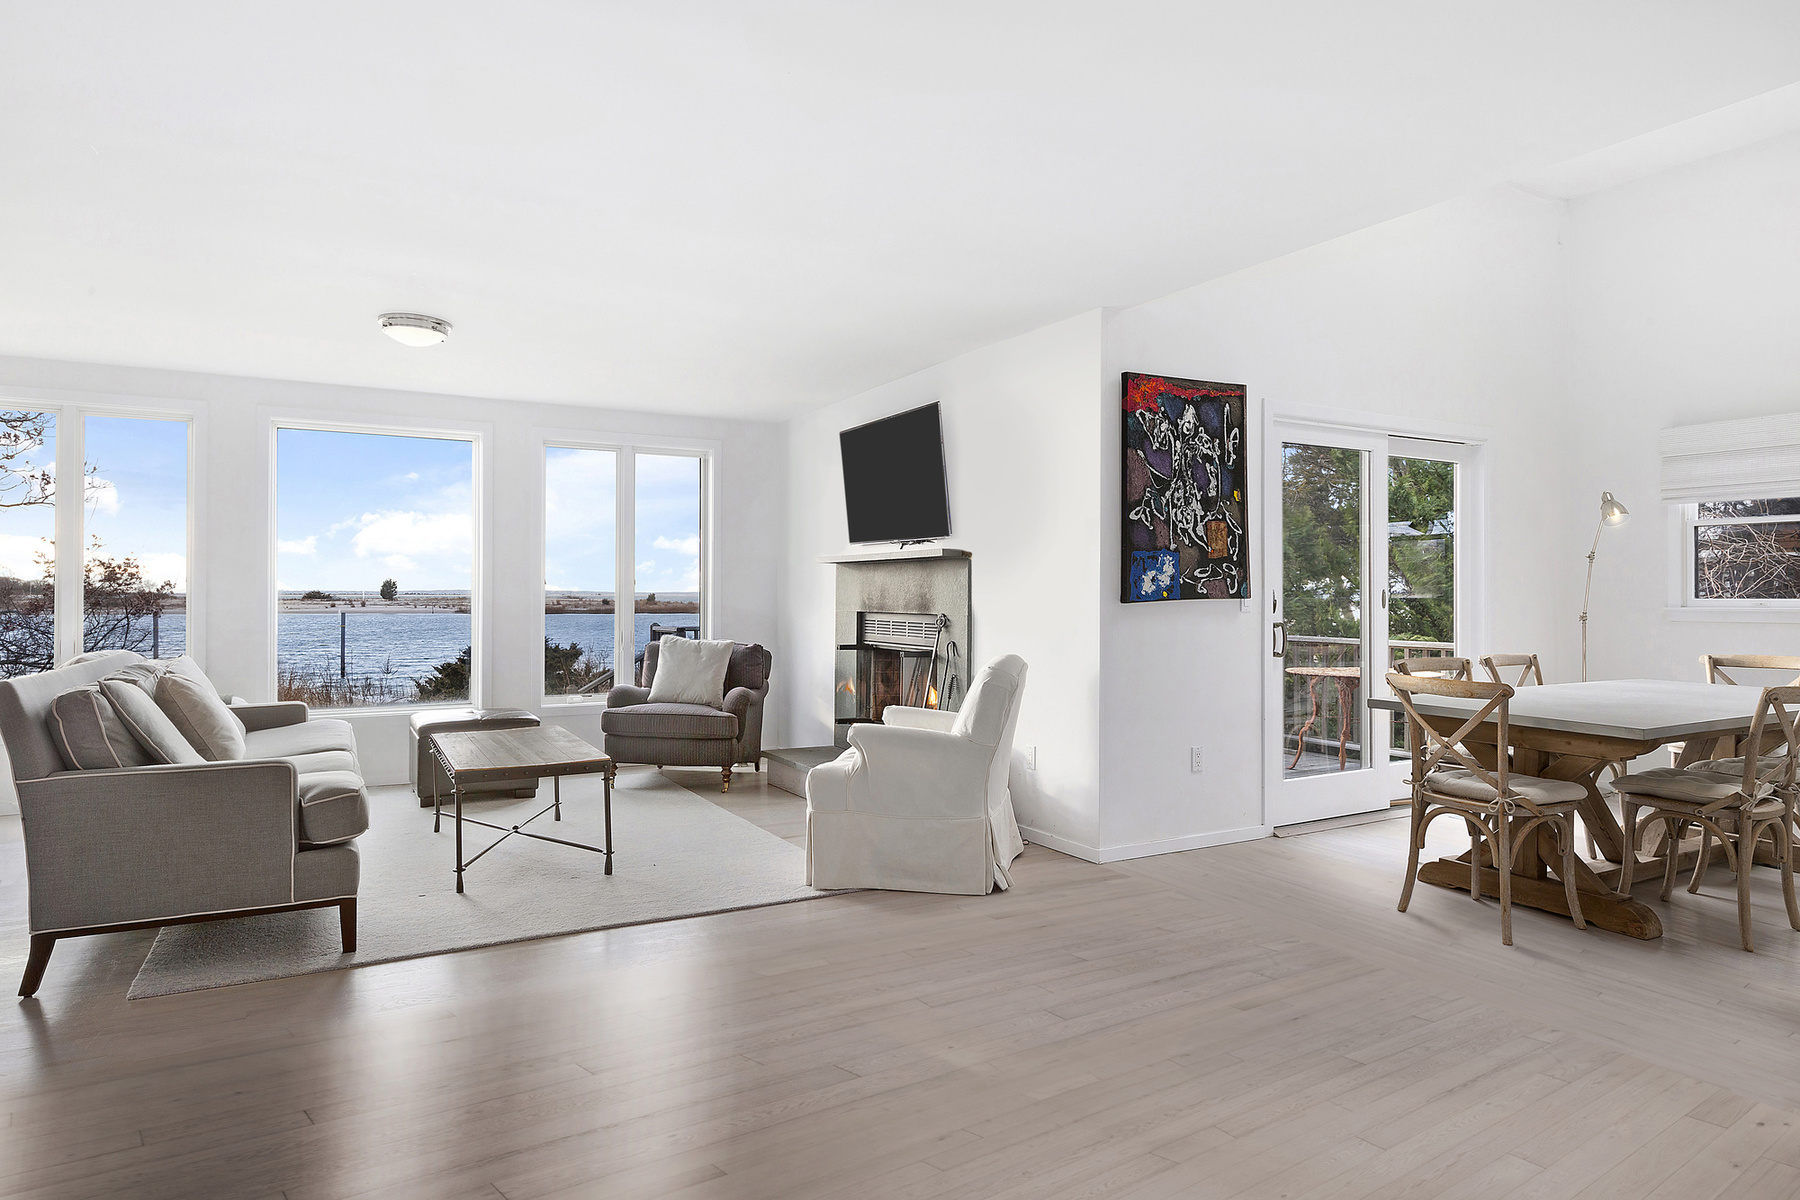 Big reveal: $2.95M for a renovated waterfront house in Sag Harbor